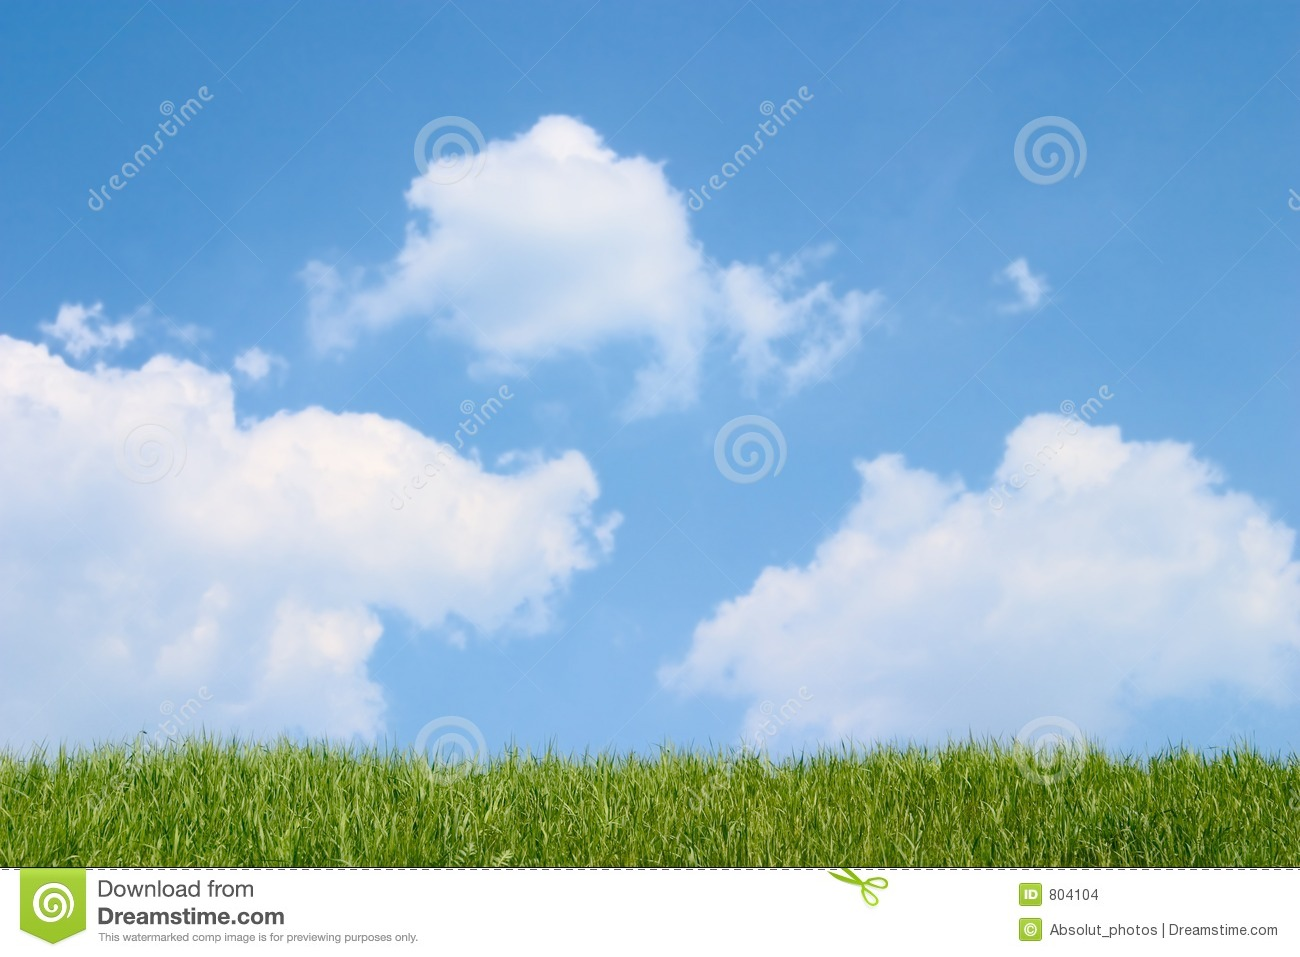 Green grass and cloudy blue sky